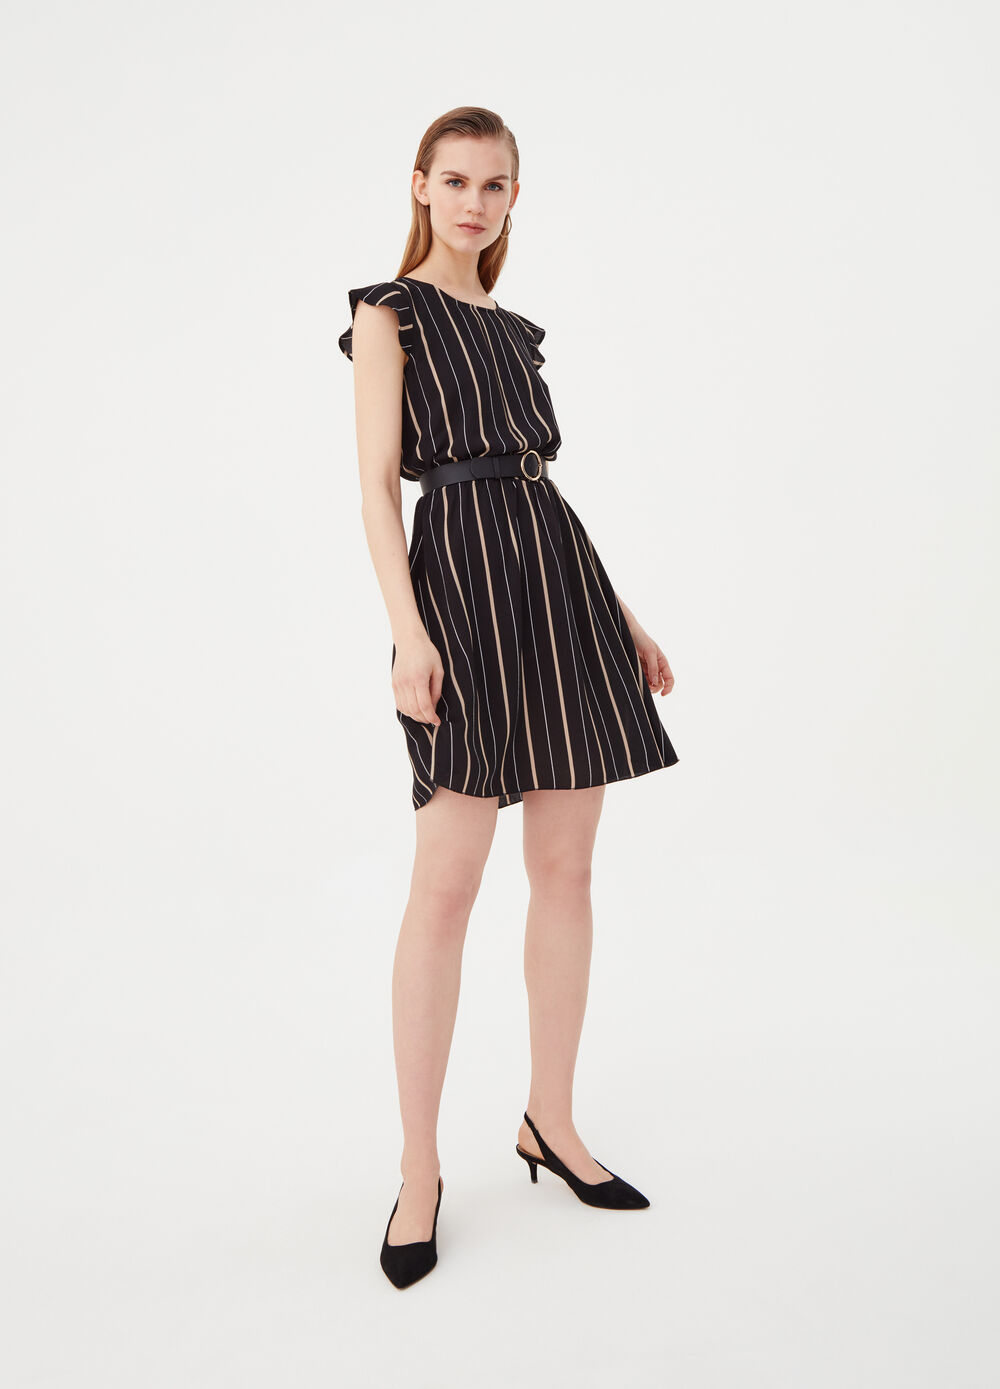 Stretch dress with elastic waistband and belt